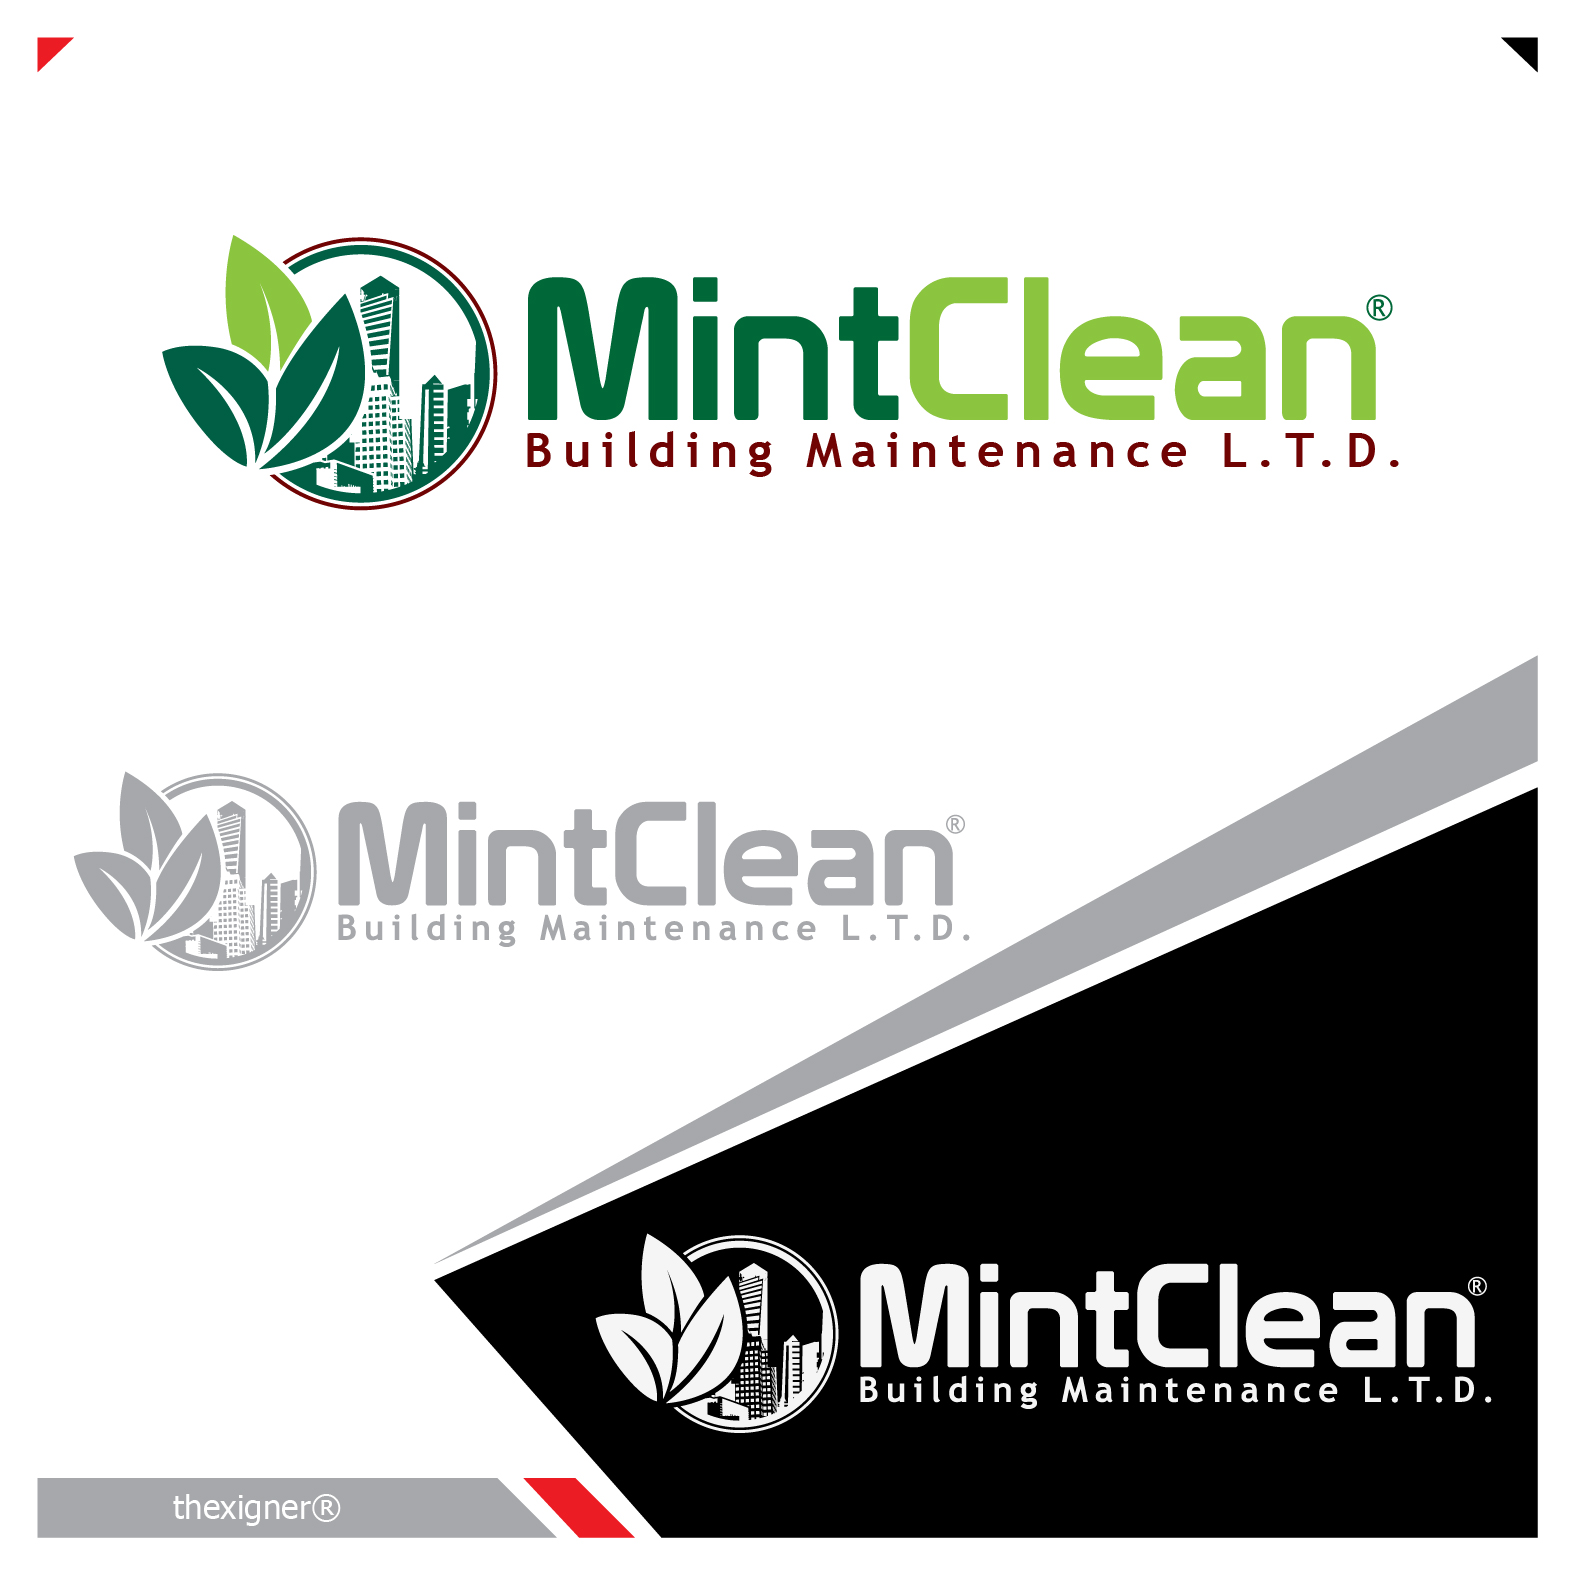 Logo Design by lagalag - Entry No. 59 in the Logo Design Contest MintClean Building Maintenance Ltd. Logo Design.